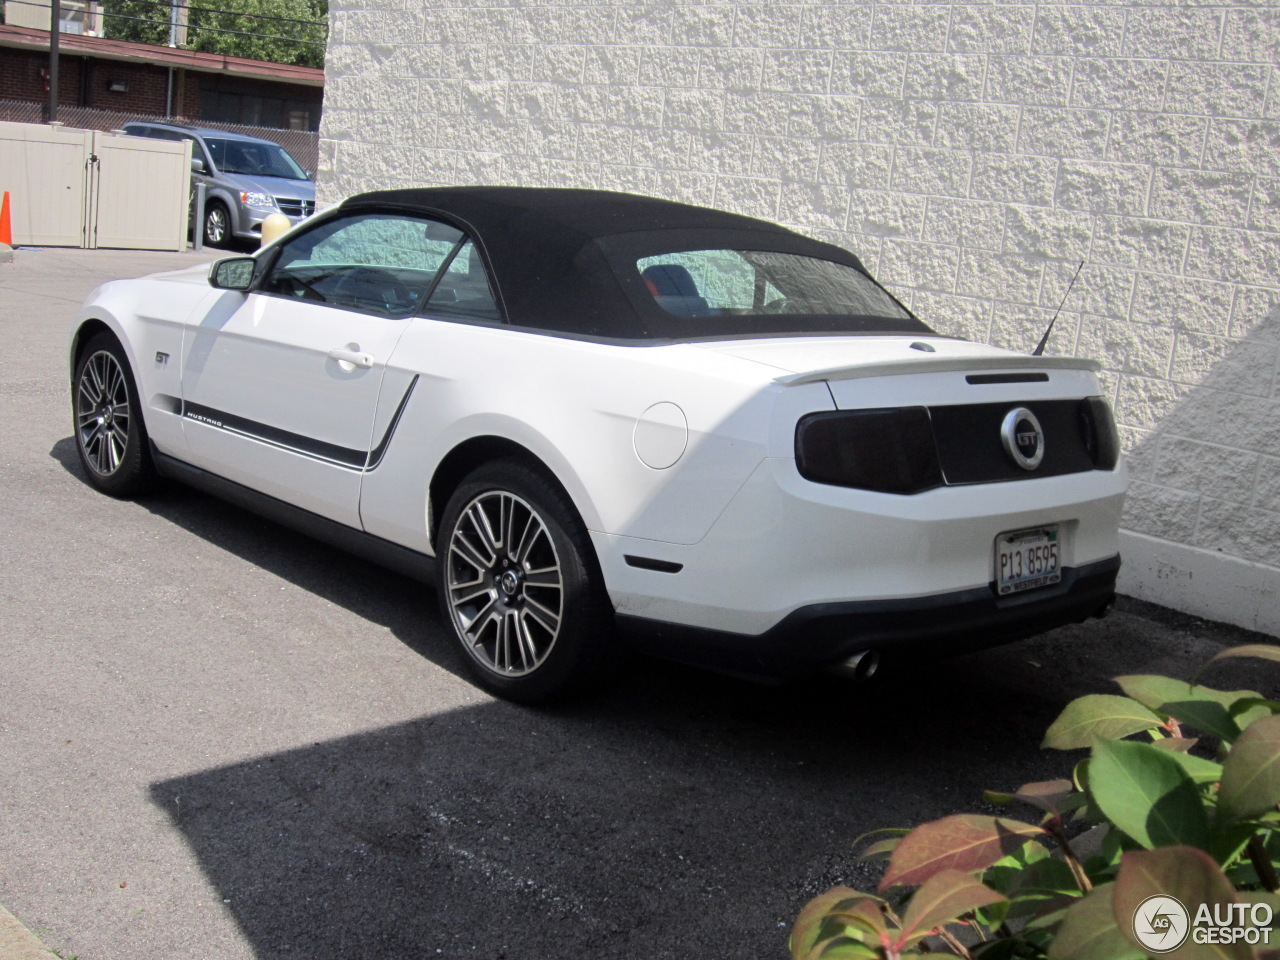 Ford Mustang Gt Convertible 2011 23 October 2016